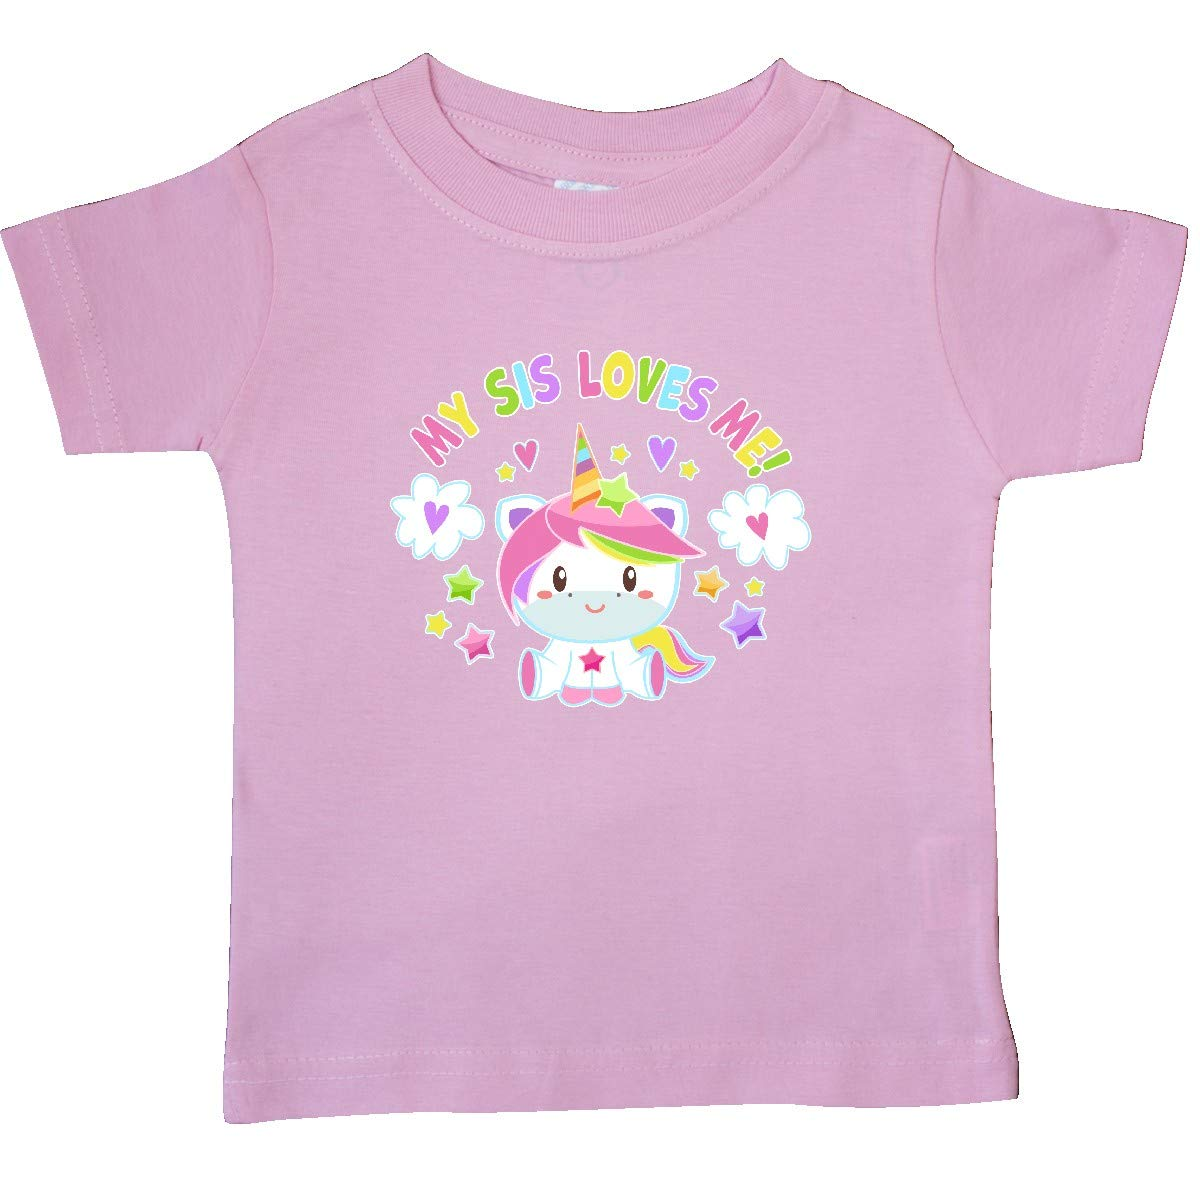 inktastic My Sis Loves Me with Cute Rainbow Unicorn Baby T-Shirt